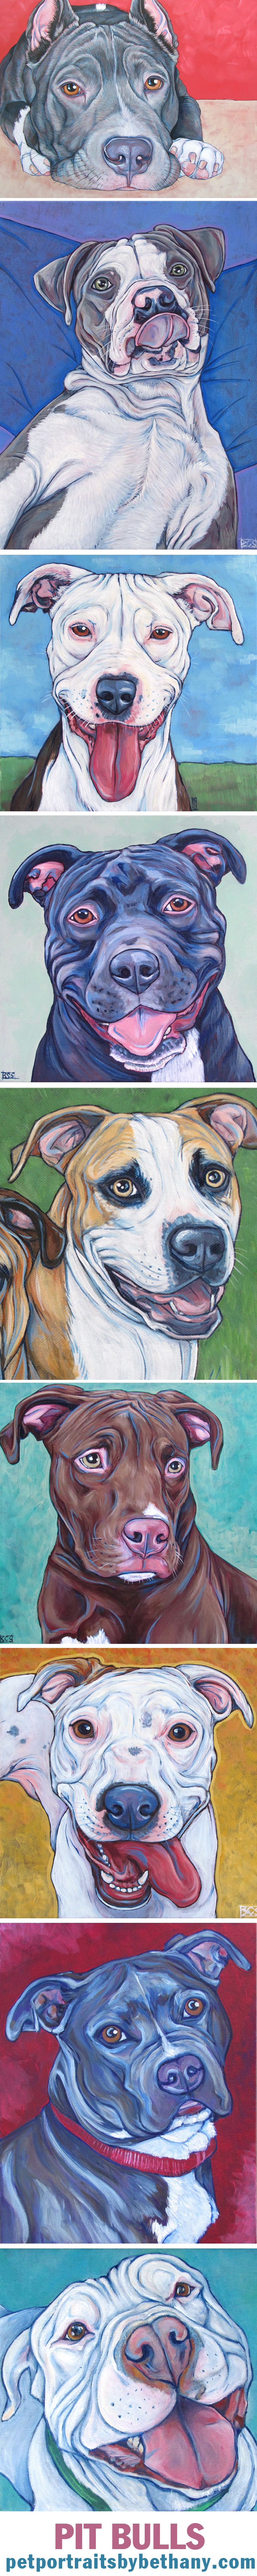 Pit Bull Dogs Custom Pet Portrait Paintings in Acrylic Paint on Canvas from Pet Portraits by Bethany. #pitbull #pitbulls #dogart #petportrait #custmopetportrait #art #petpainting #pets